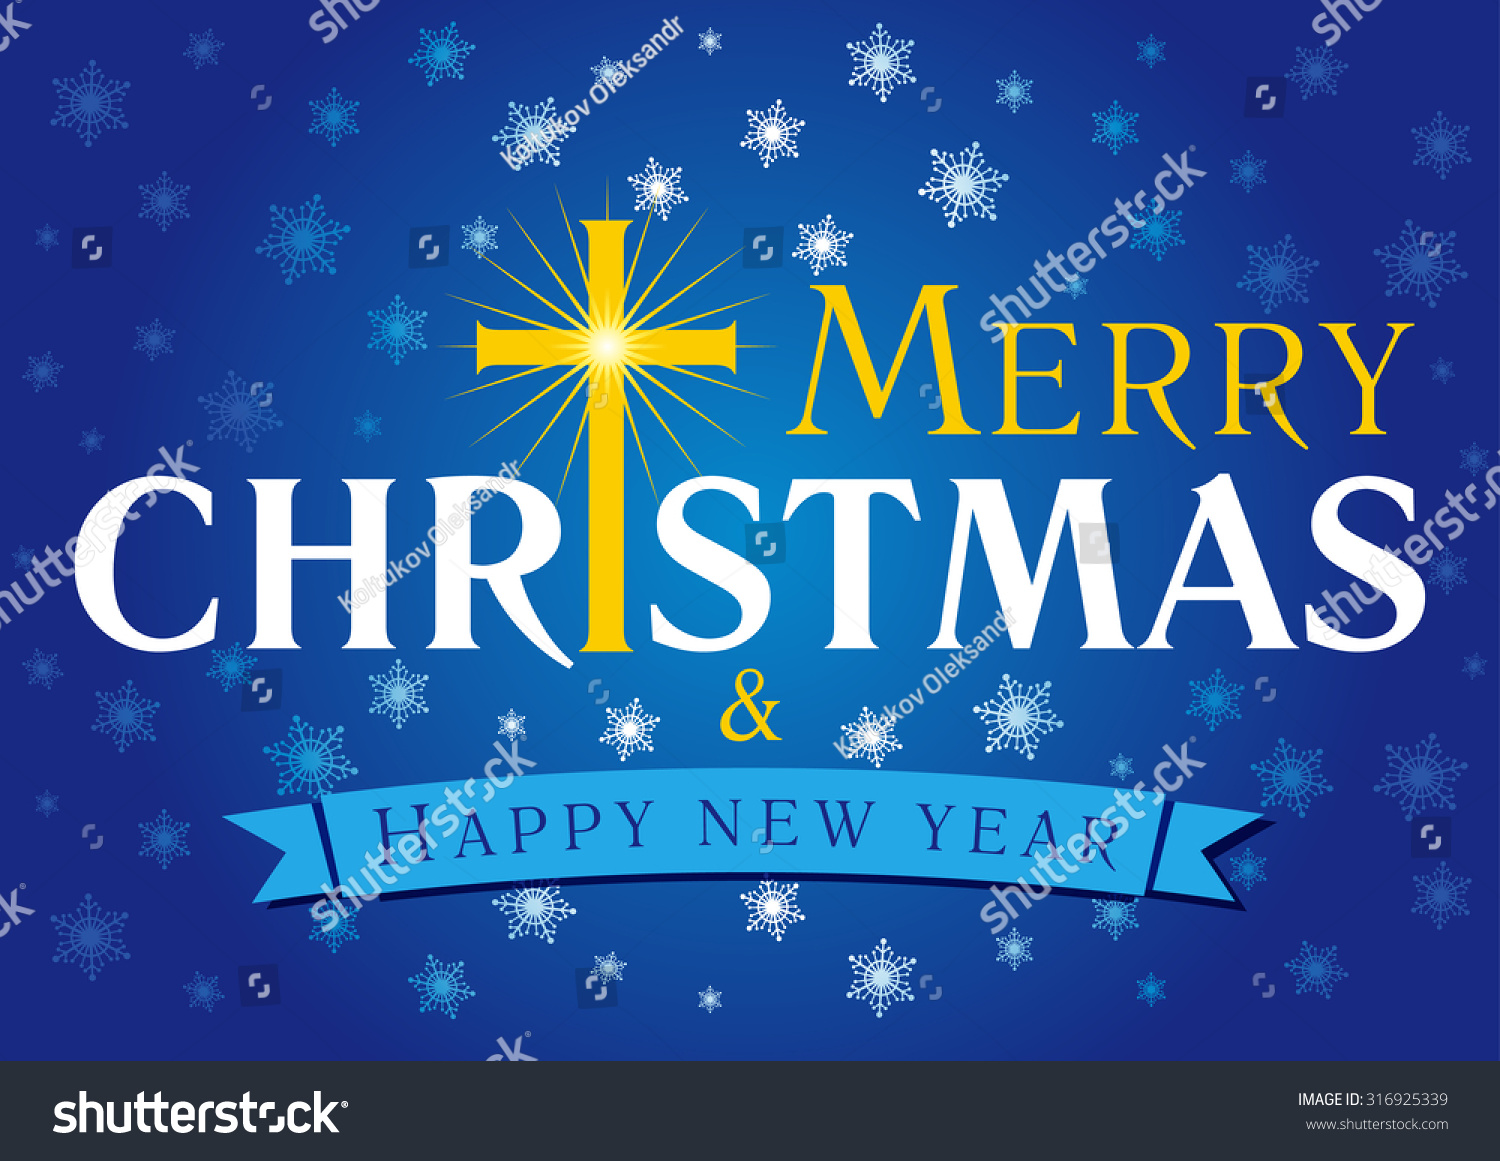 Merry christmas happy new year greetings stock vector 316925339 merry christmas a happy new year greetings celebrating congratulating decorative traditional blue card with kristyandbryce Gallery